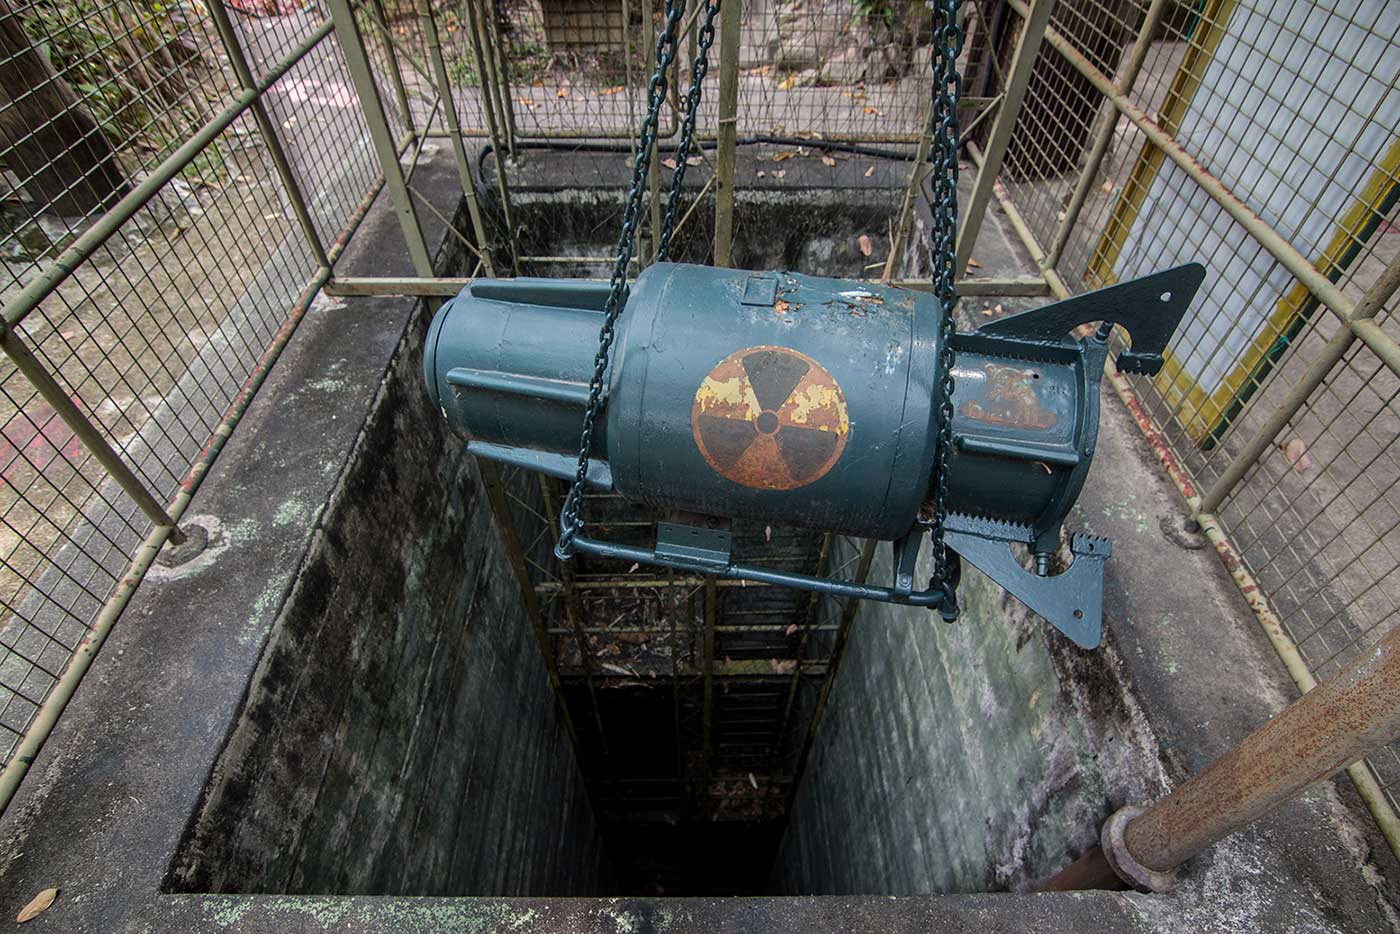 A winch was used to access the fort's explosives dump – located four levels underground.